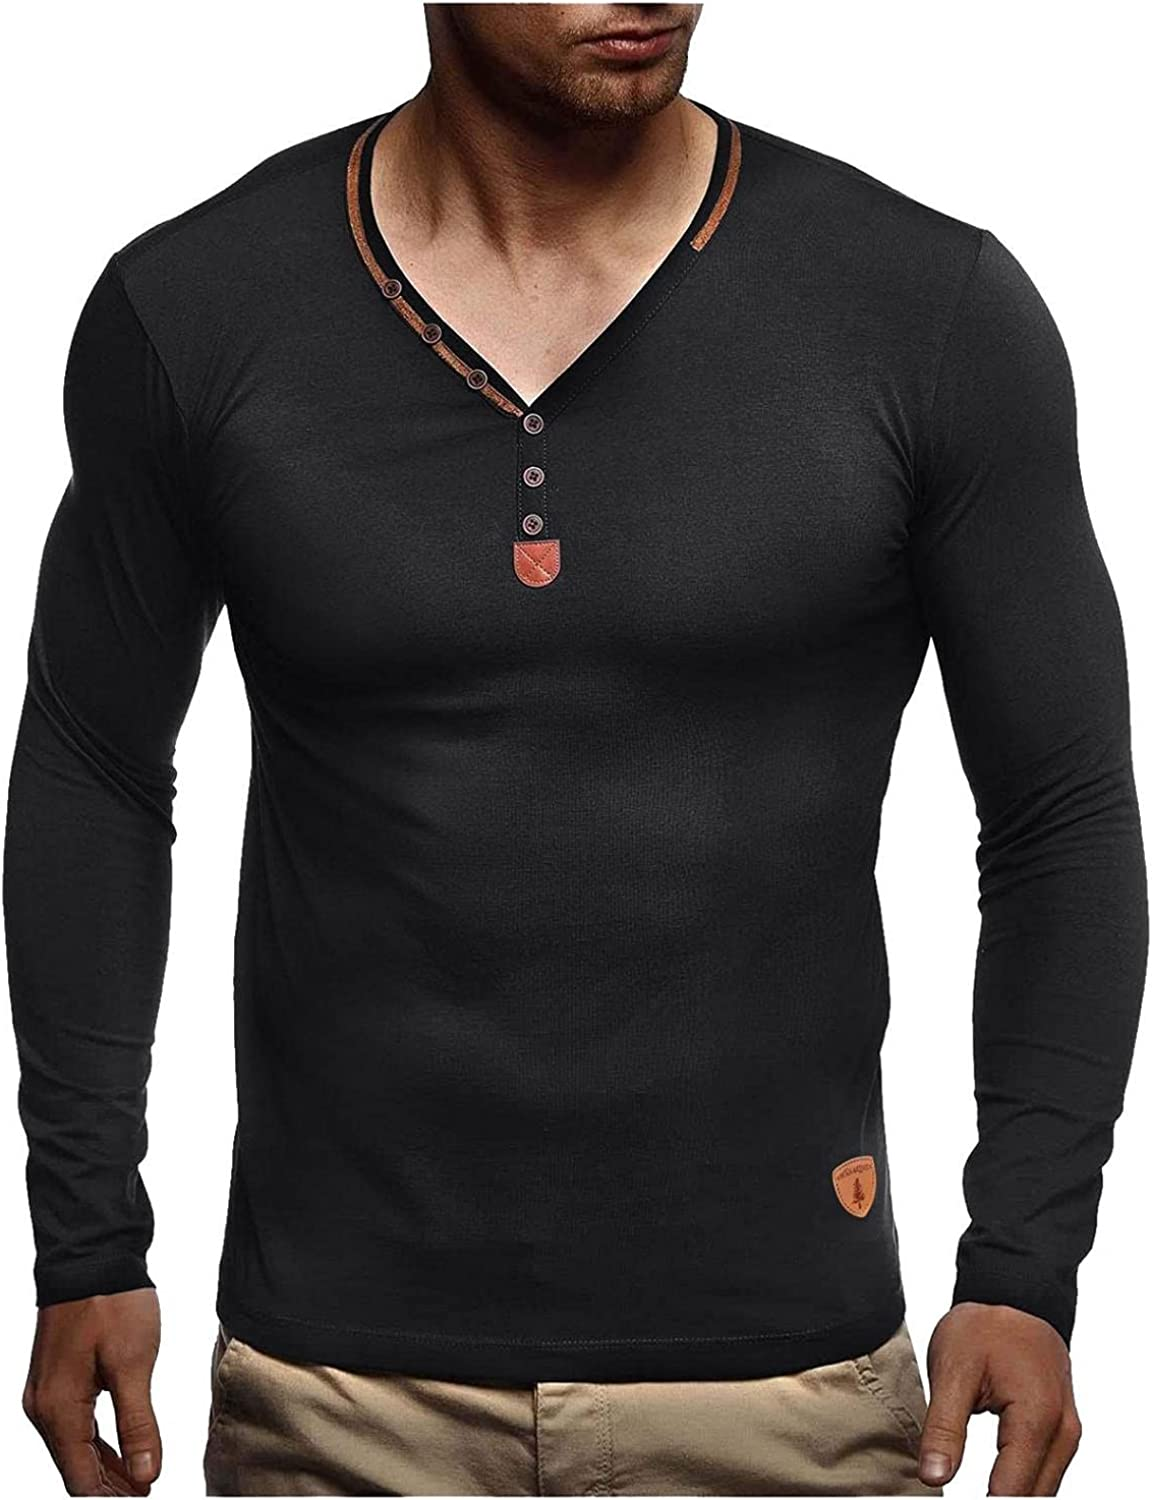 Aayomet Men's T Shirts Vintage Button Solid Long Sleeve V Neck T-Shirt Casual Sport Workout Athletic Tee Tops Shirts